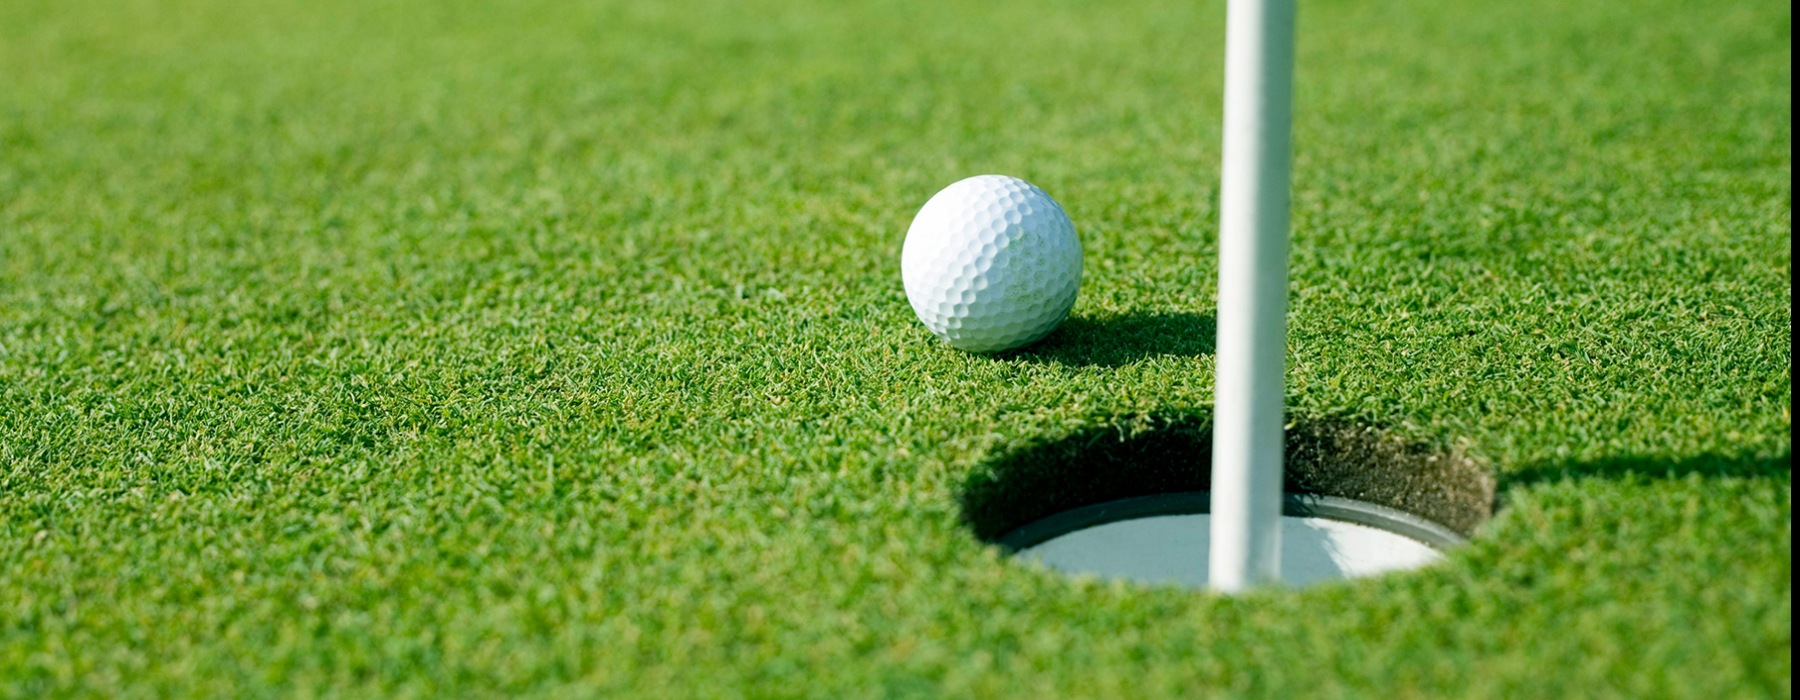 lifestyle image of green turf and a golf ball on a golf course